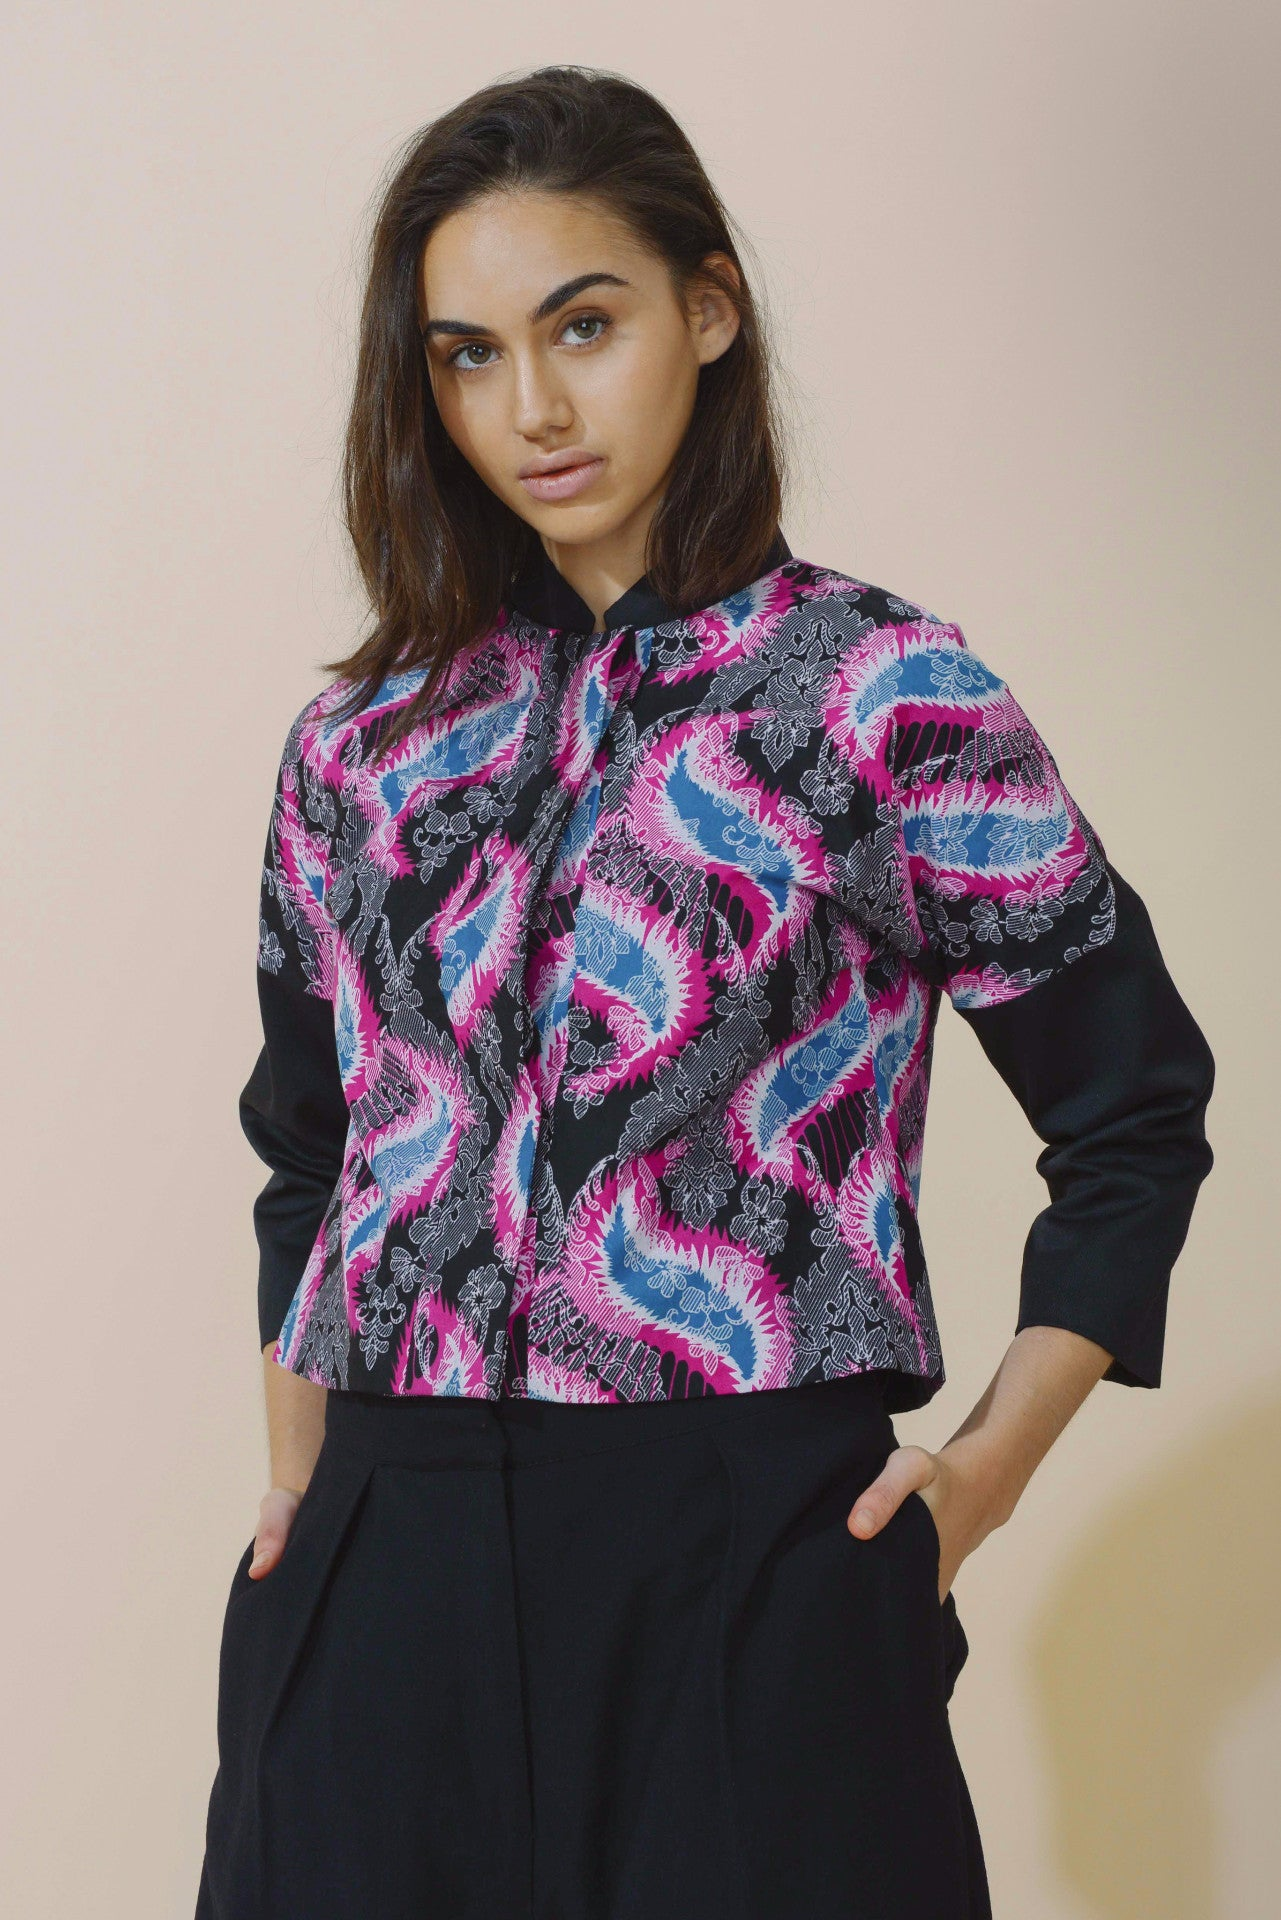 Contrast Sleeve Bomber Jacket in Baroque Paisley Print from Mayamiko